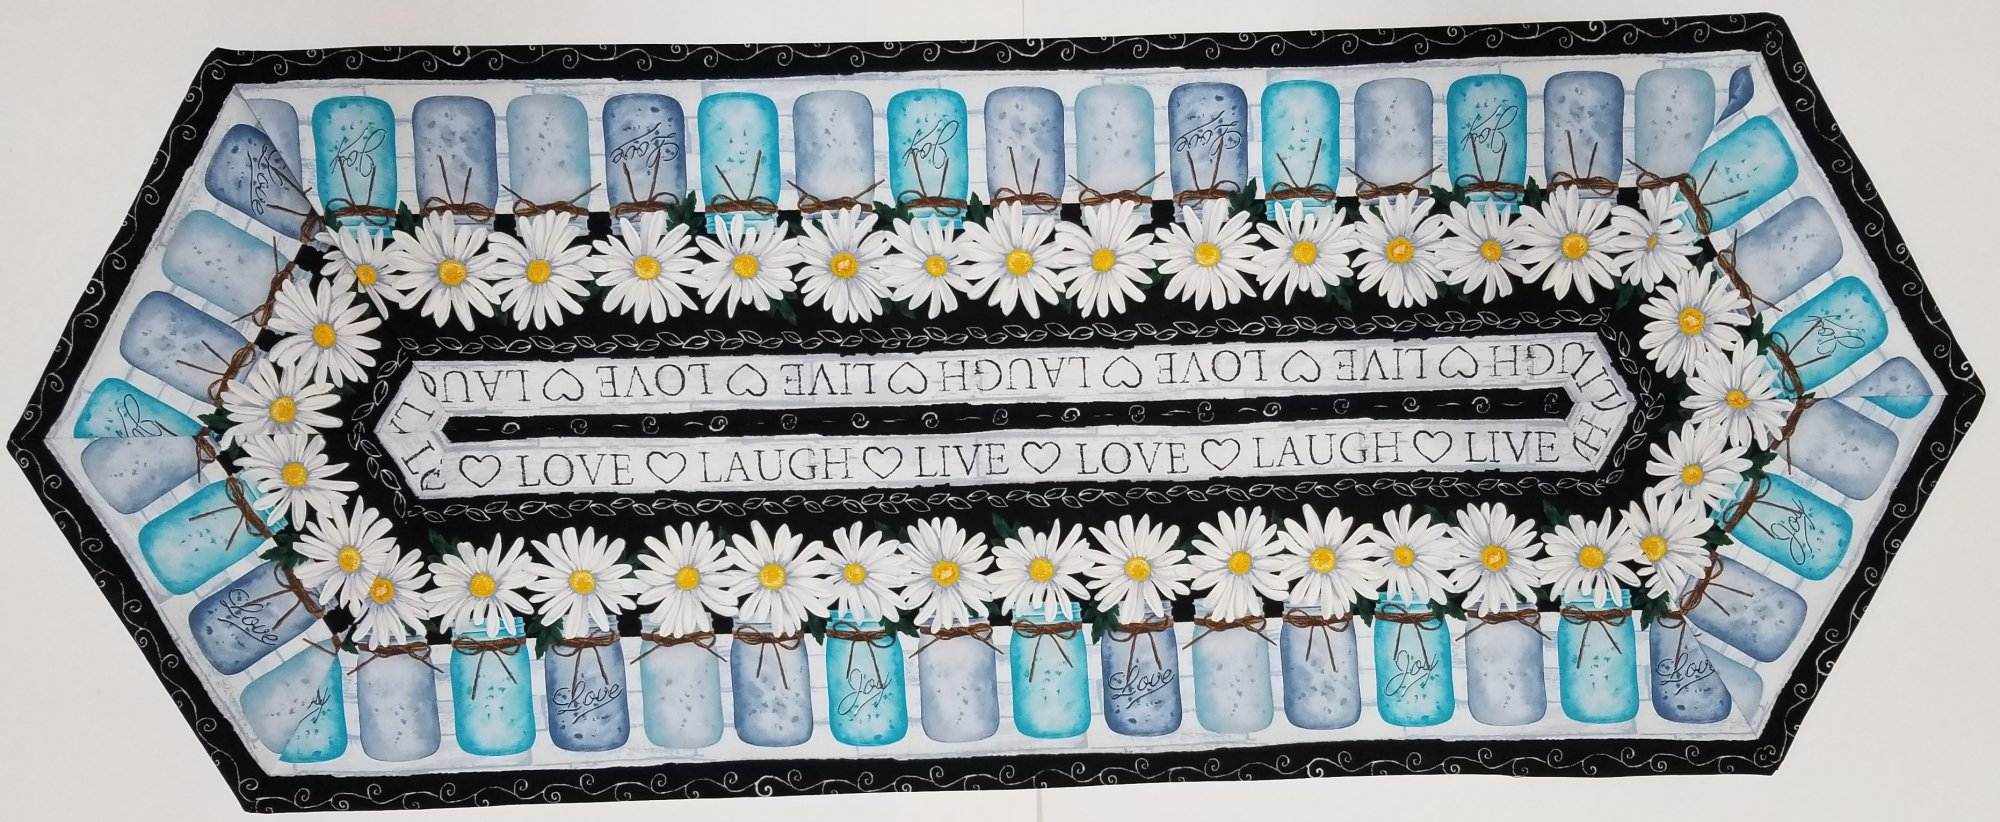 Easy Striped Daisy Table Runner KIt